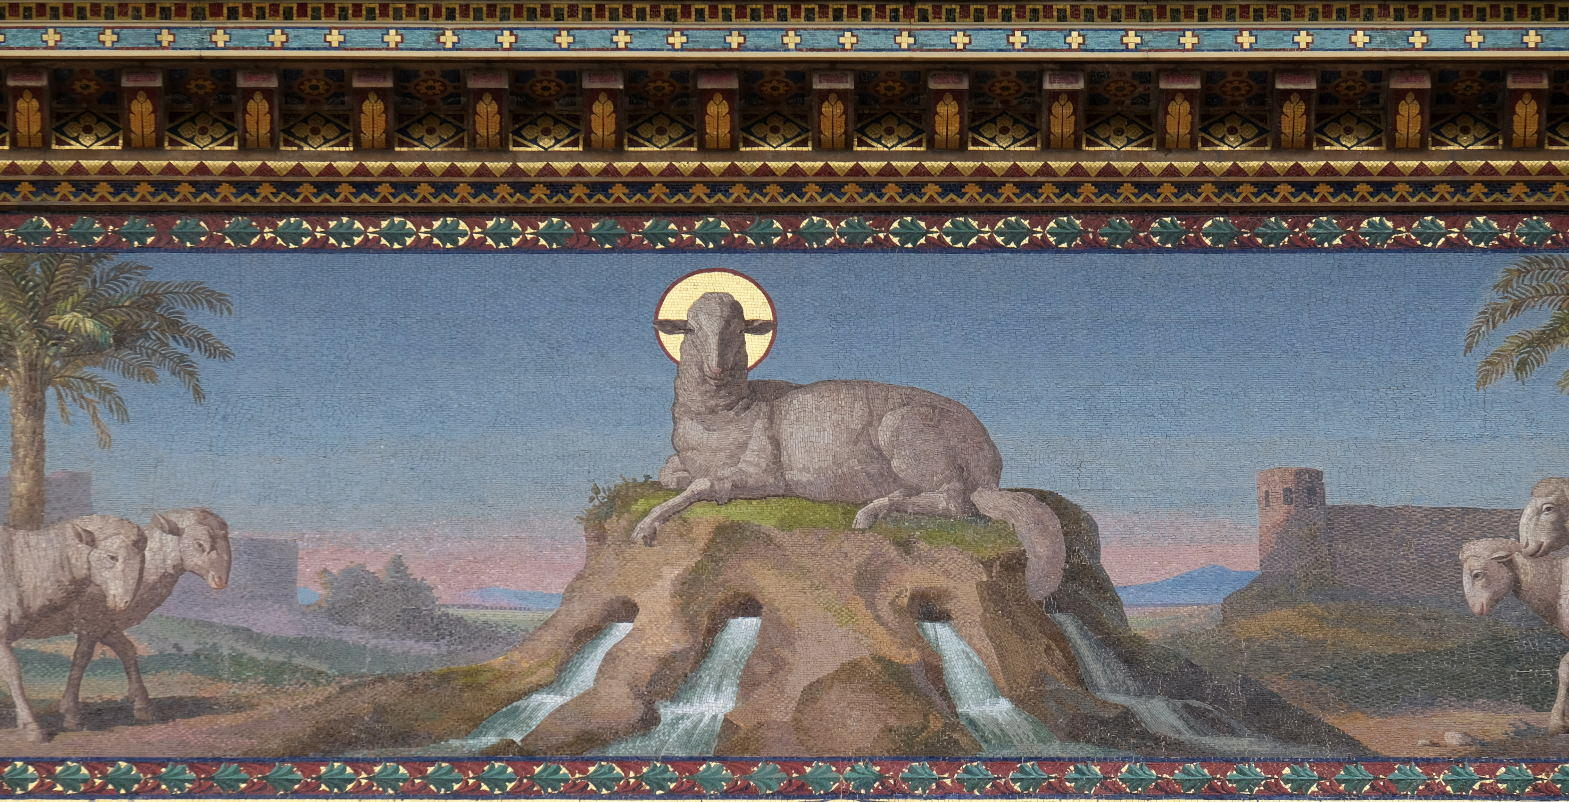 Mosaic of Mystical Lamb, Basilica of Saint Paul outside the walls